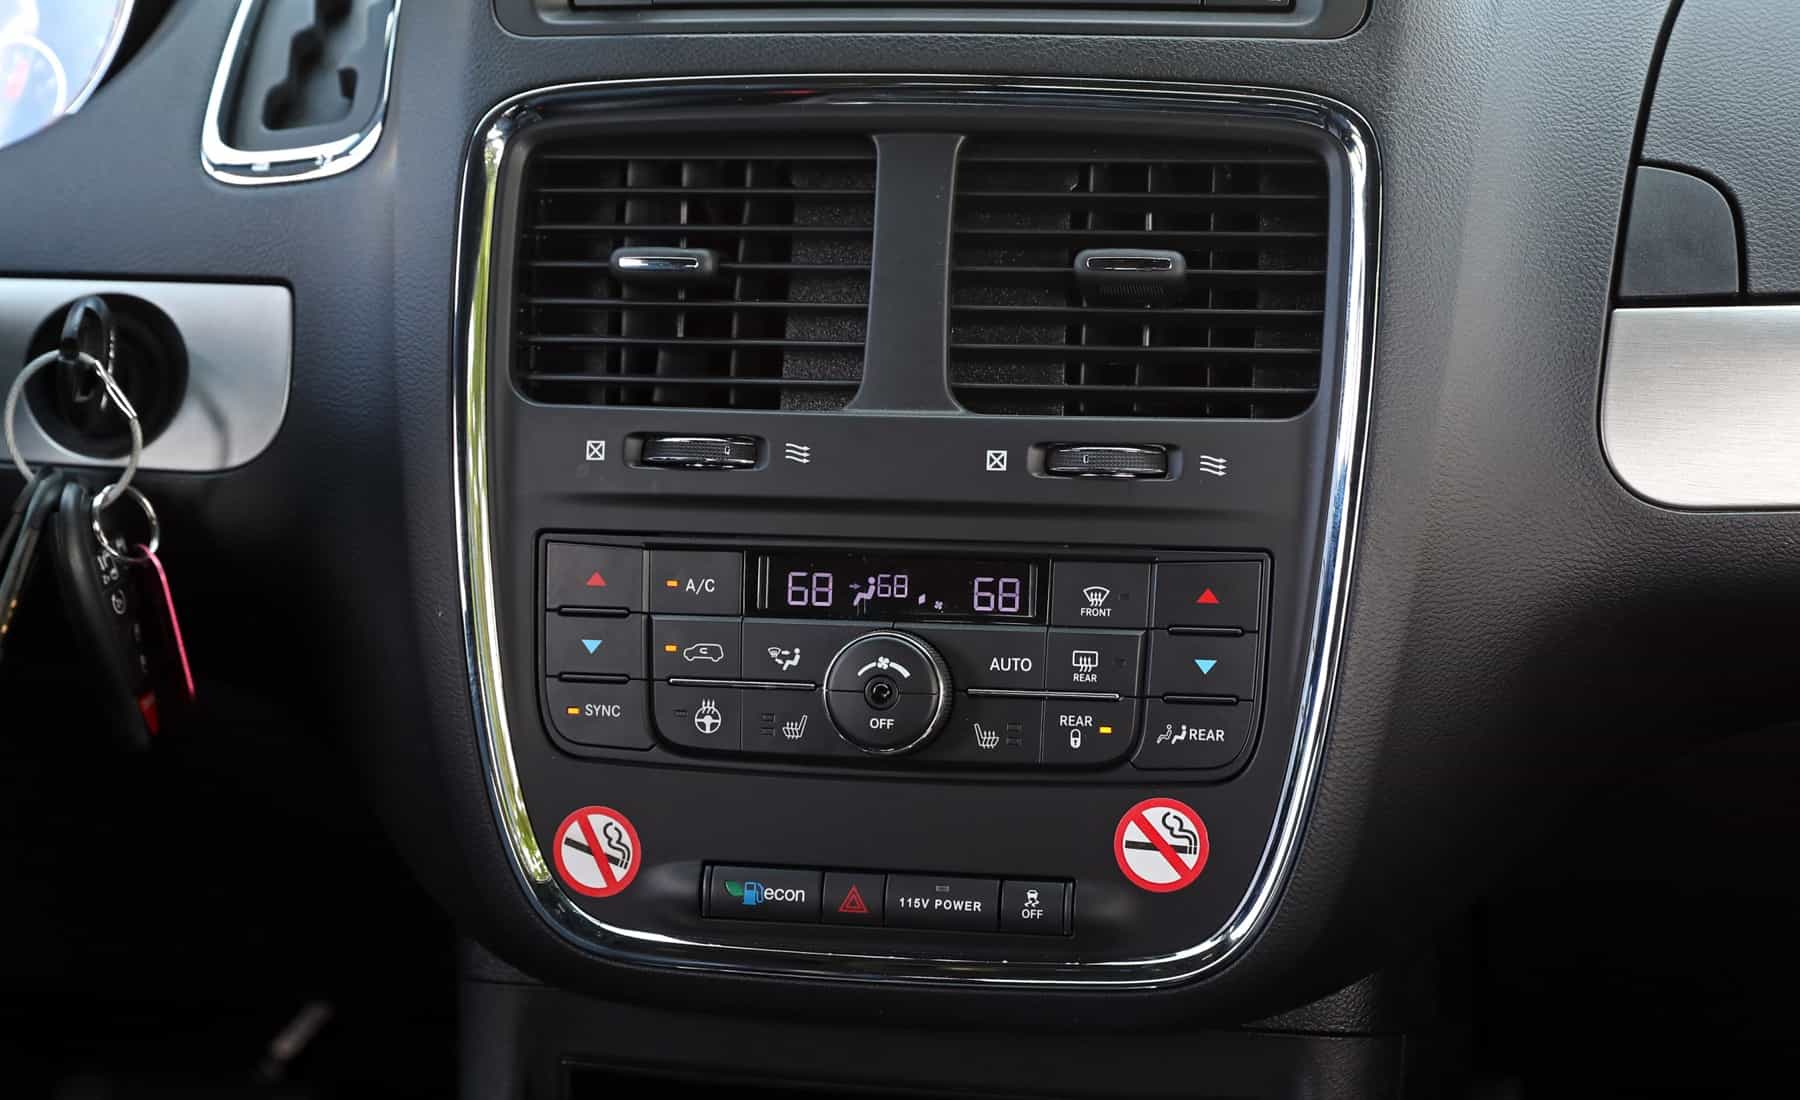 2017 Dodge Grand Caravan Interior View Climate Control (Photo 20 of 47)